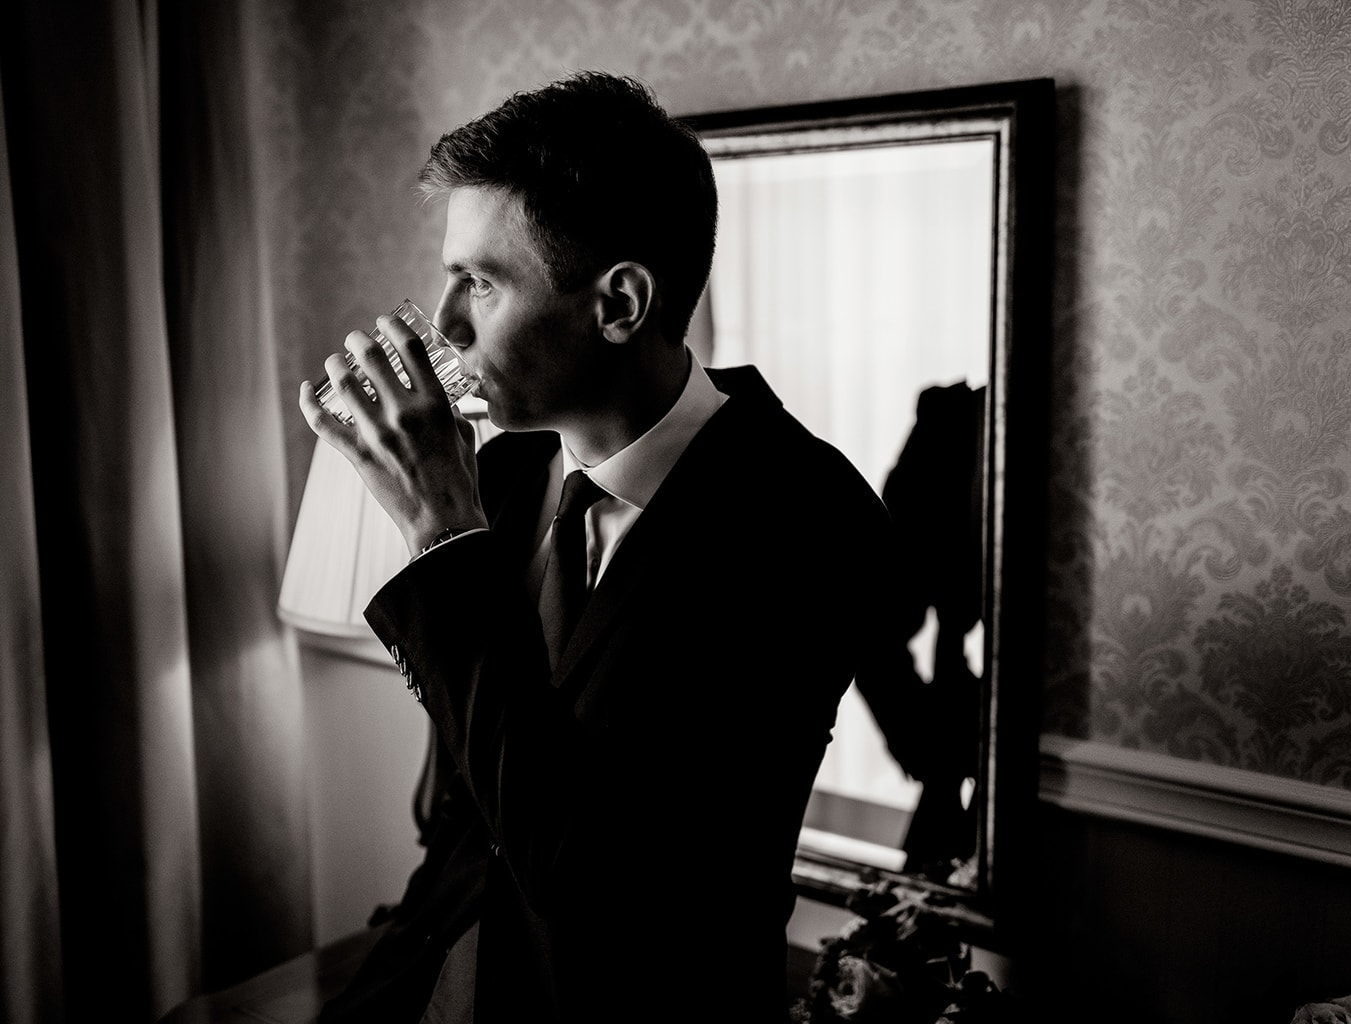 Handsome young man in suit drinking